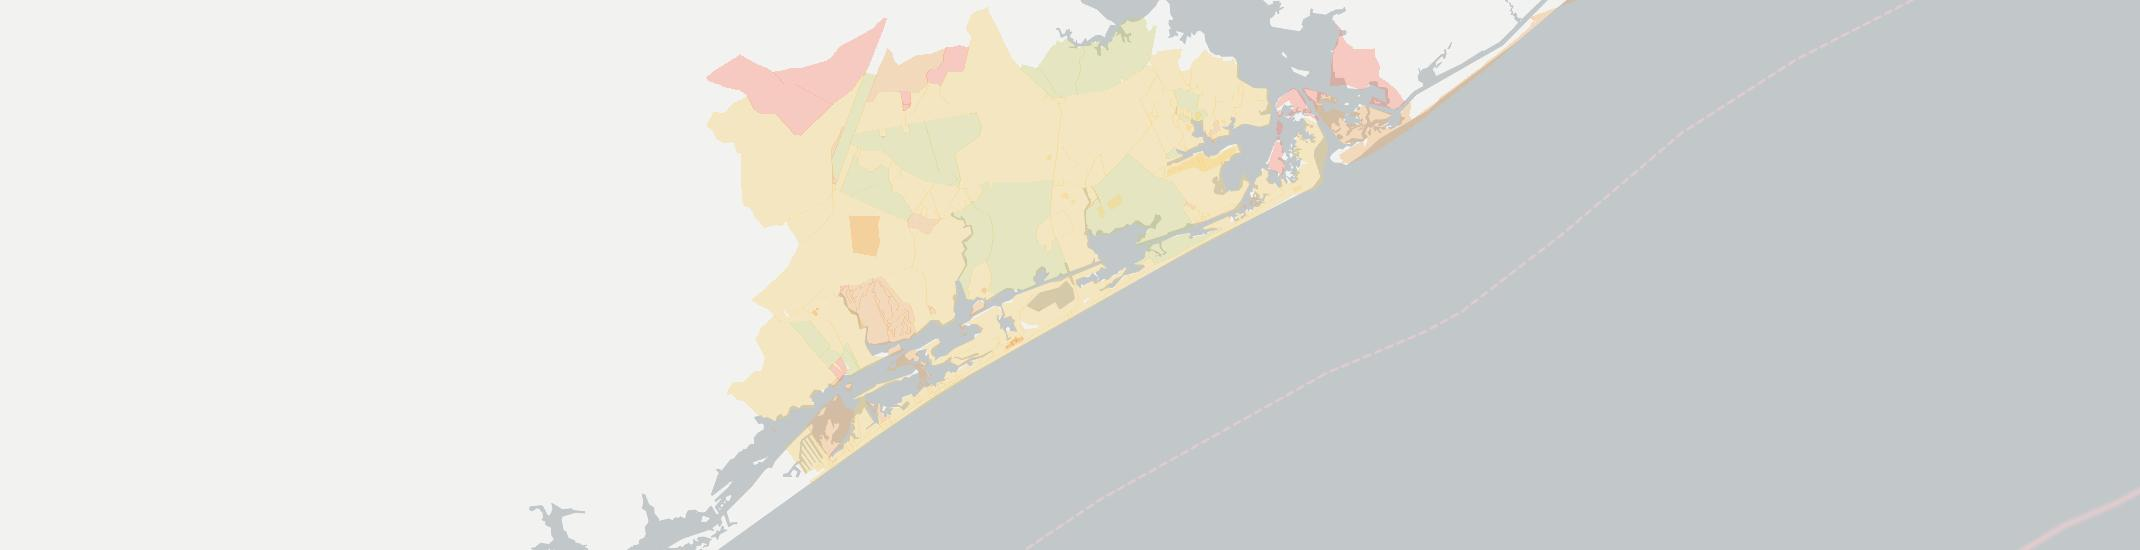 North Topsail Beach Internet Competition Map. Click for interactive map.